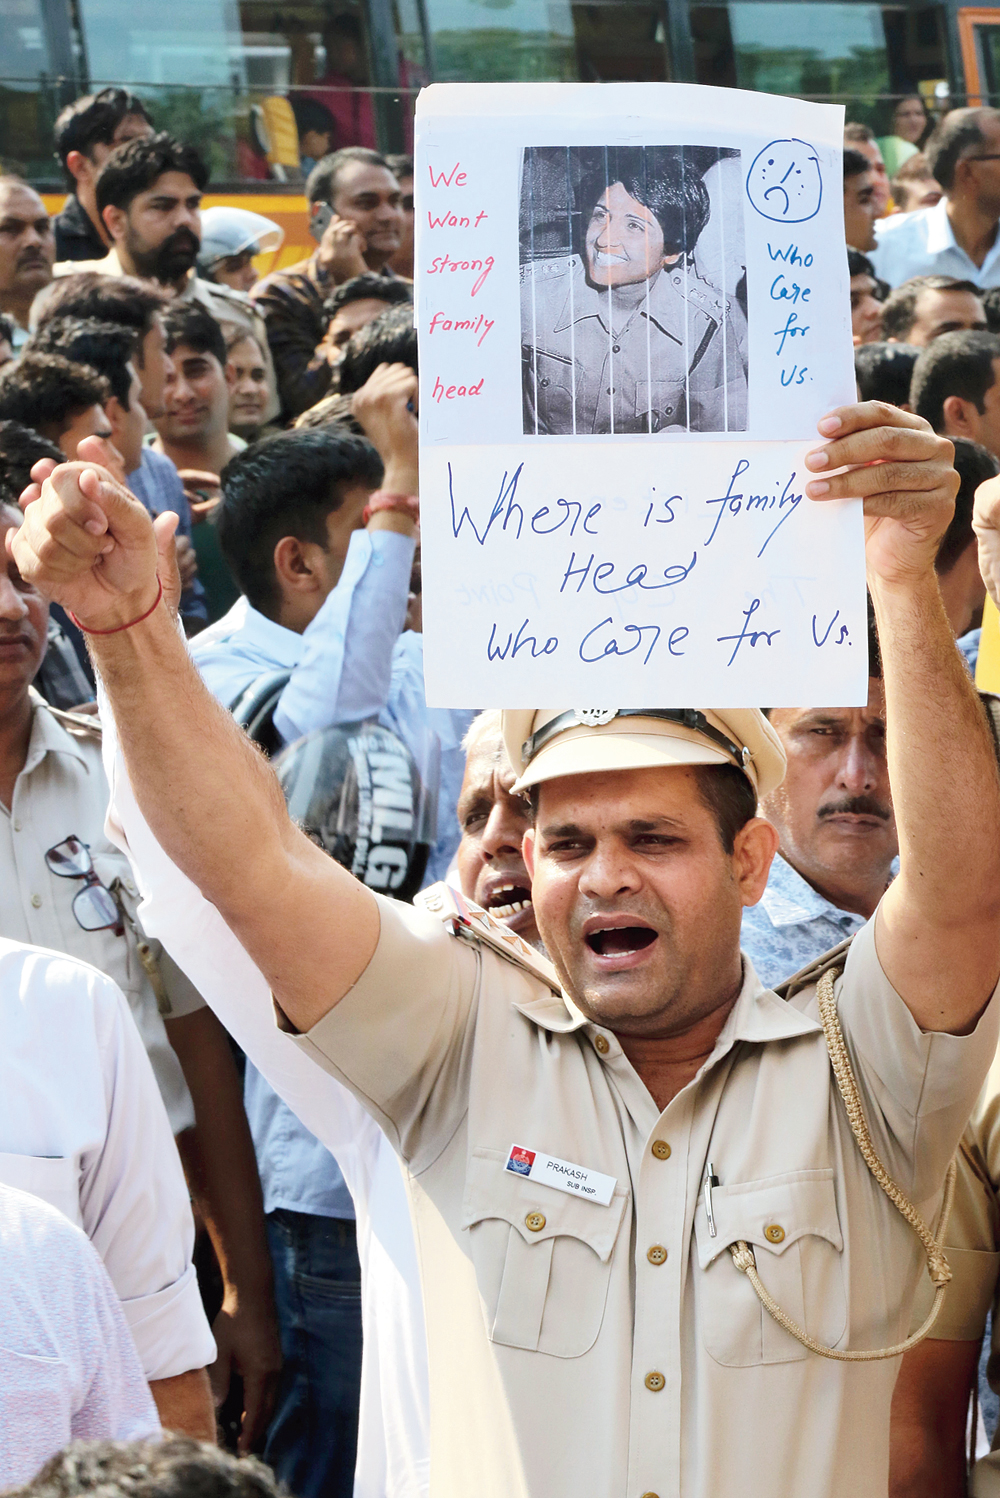 """A policeman holds up a poster featuring Kiran Bedi. A line in the poster reads: """"We want strong family head."""""""